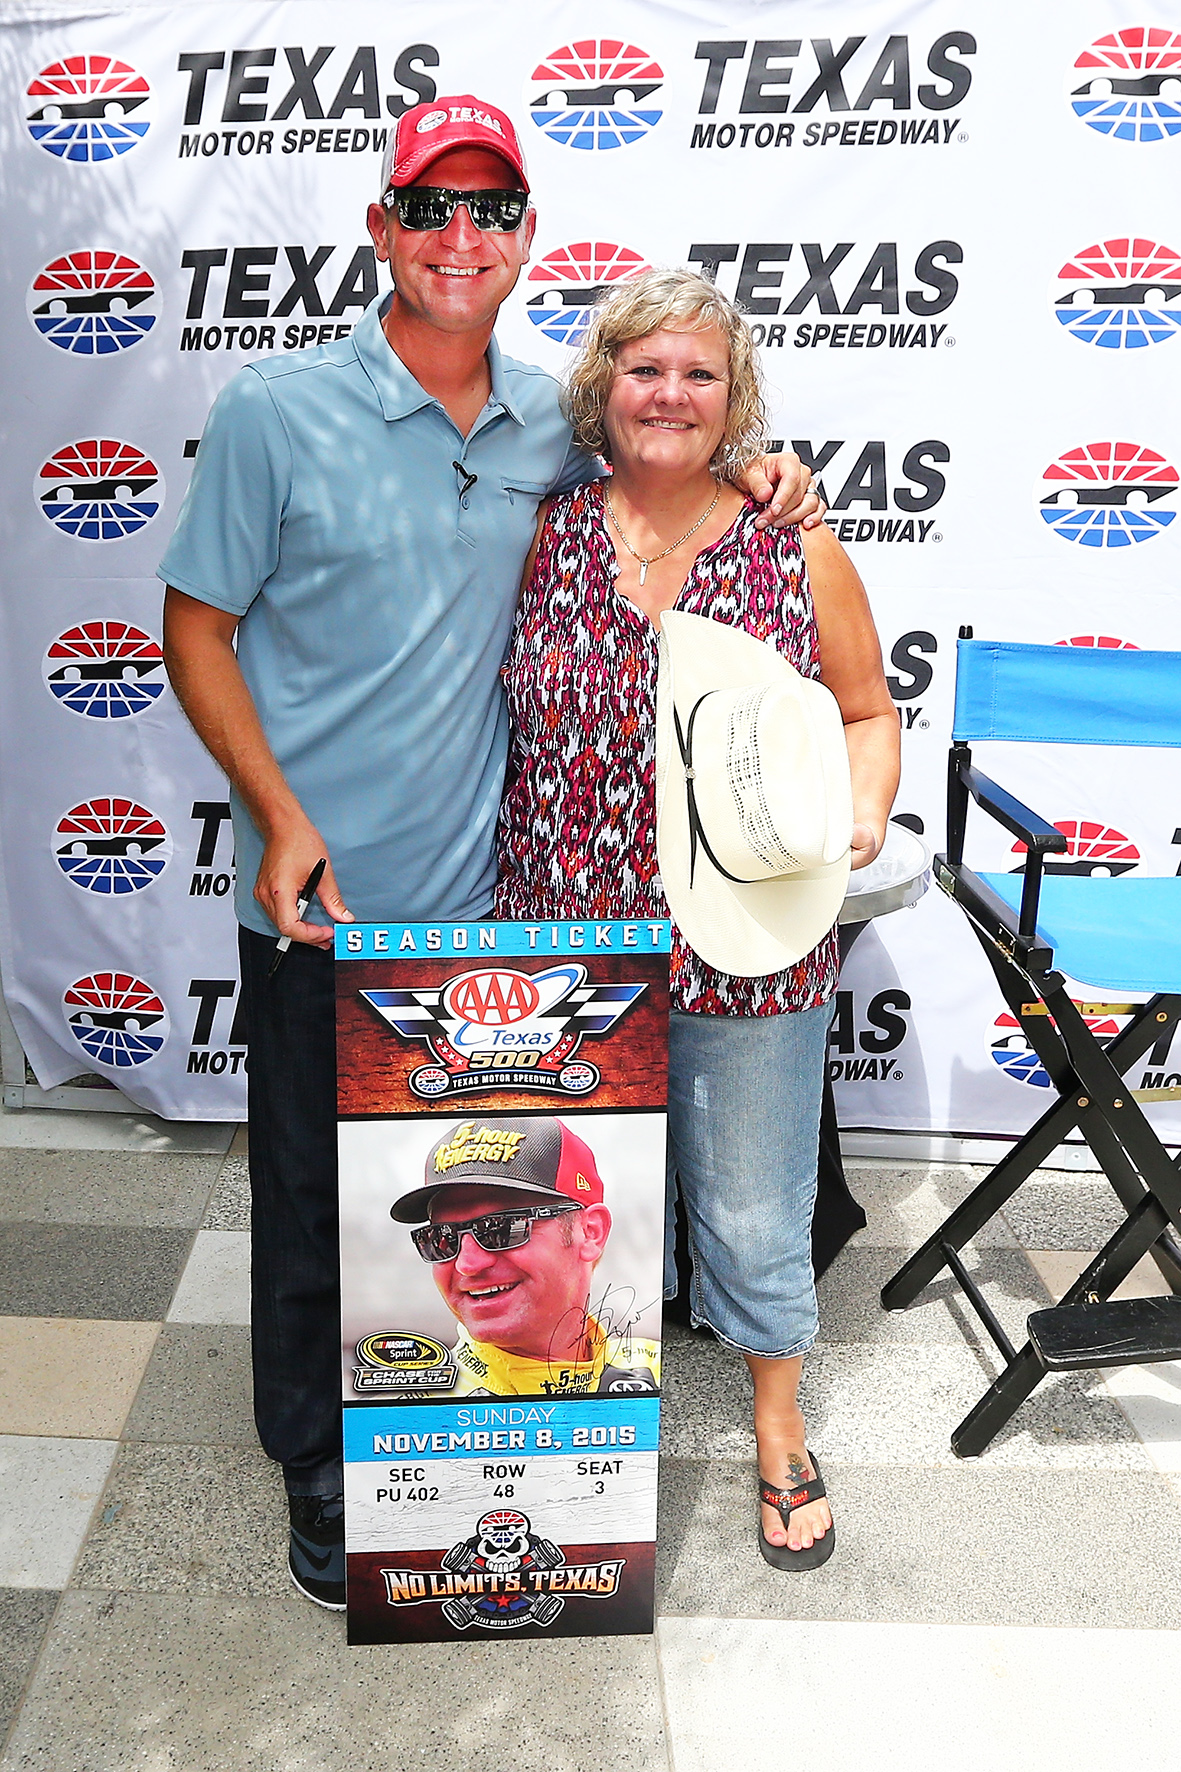 "DALLAS, Texas - SEPTEMBER 15: NASCAR Sprint Cup Series driver Clint Bowyer (L) poses with Texas Motor Speedway season ticketholder Judy McMains after a surprise visit as part of NASCAR's Chase Across North America Day on September 15, 2015 at Klyde Warren Park in Dallas, Texas. Bowyer posed as a pestering videographer for a fictitious ""Texas Motor Speedway Fan Appreciation Day"" before revealing his identity and surprising the season ticketholder. (Photo by Sarah Crabill/Getty Images for Texas Motor Speedway) *** Local Caption *** Clint Bowyer; Judy McMains"